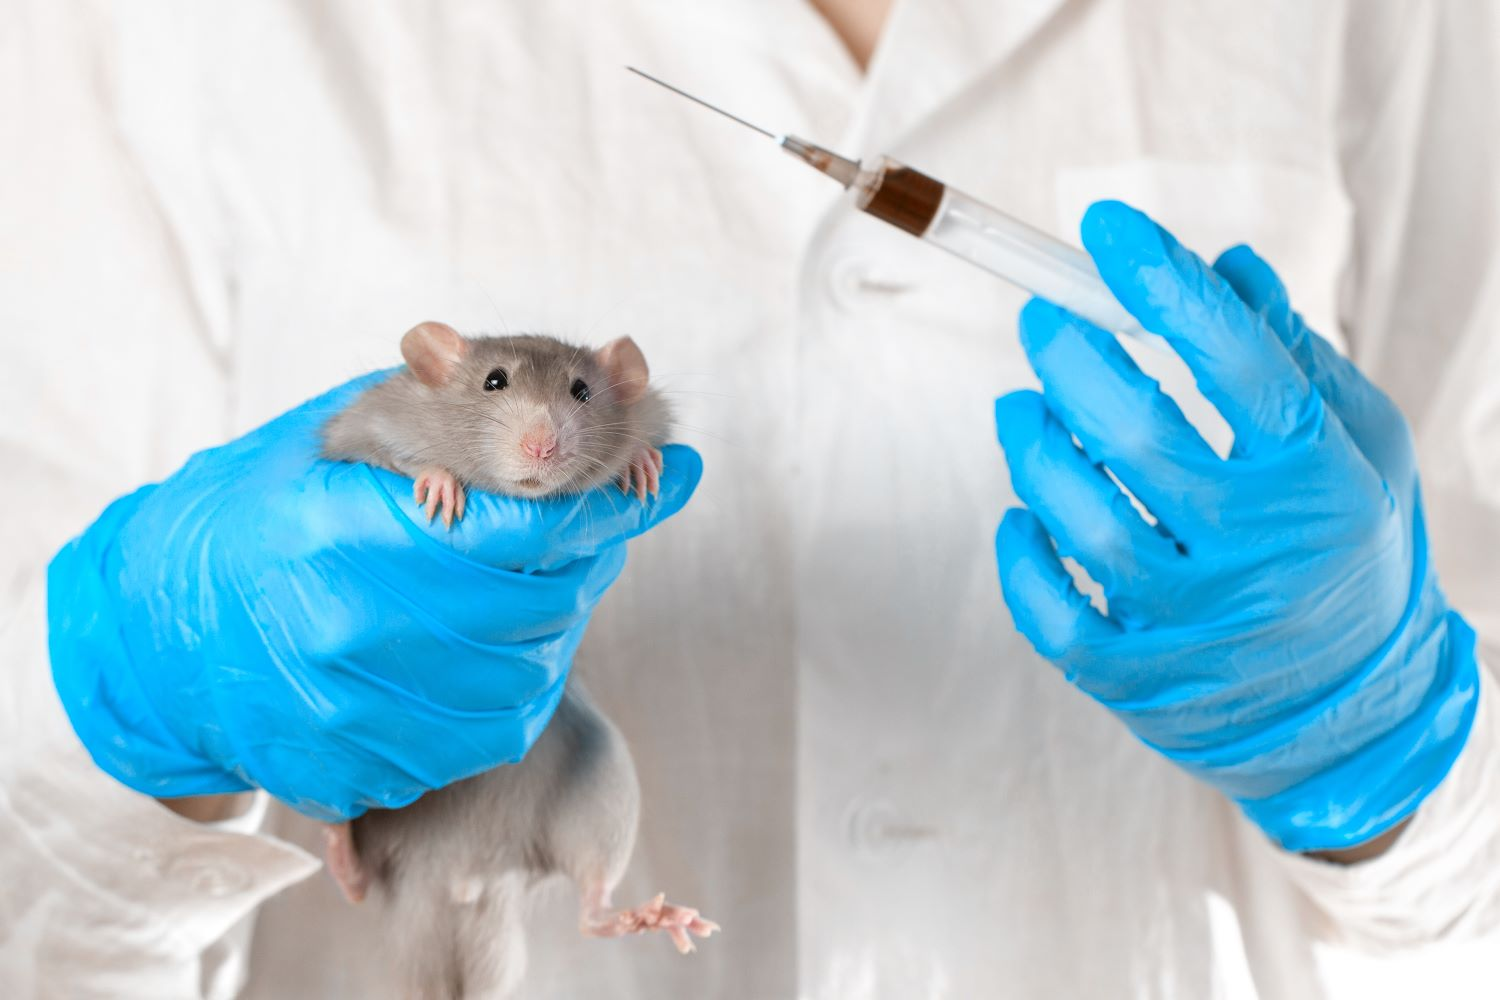 Urgent action needed to reduce shocking level of animal use in UK laboratories